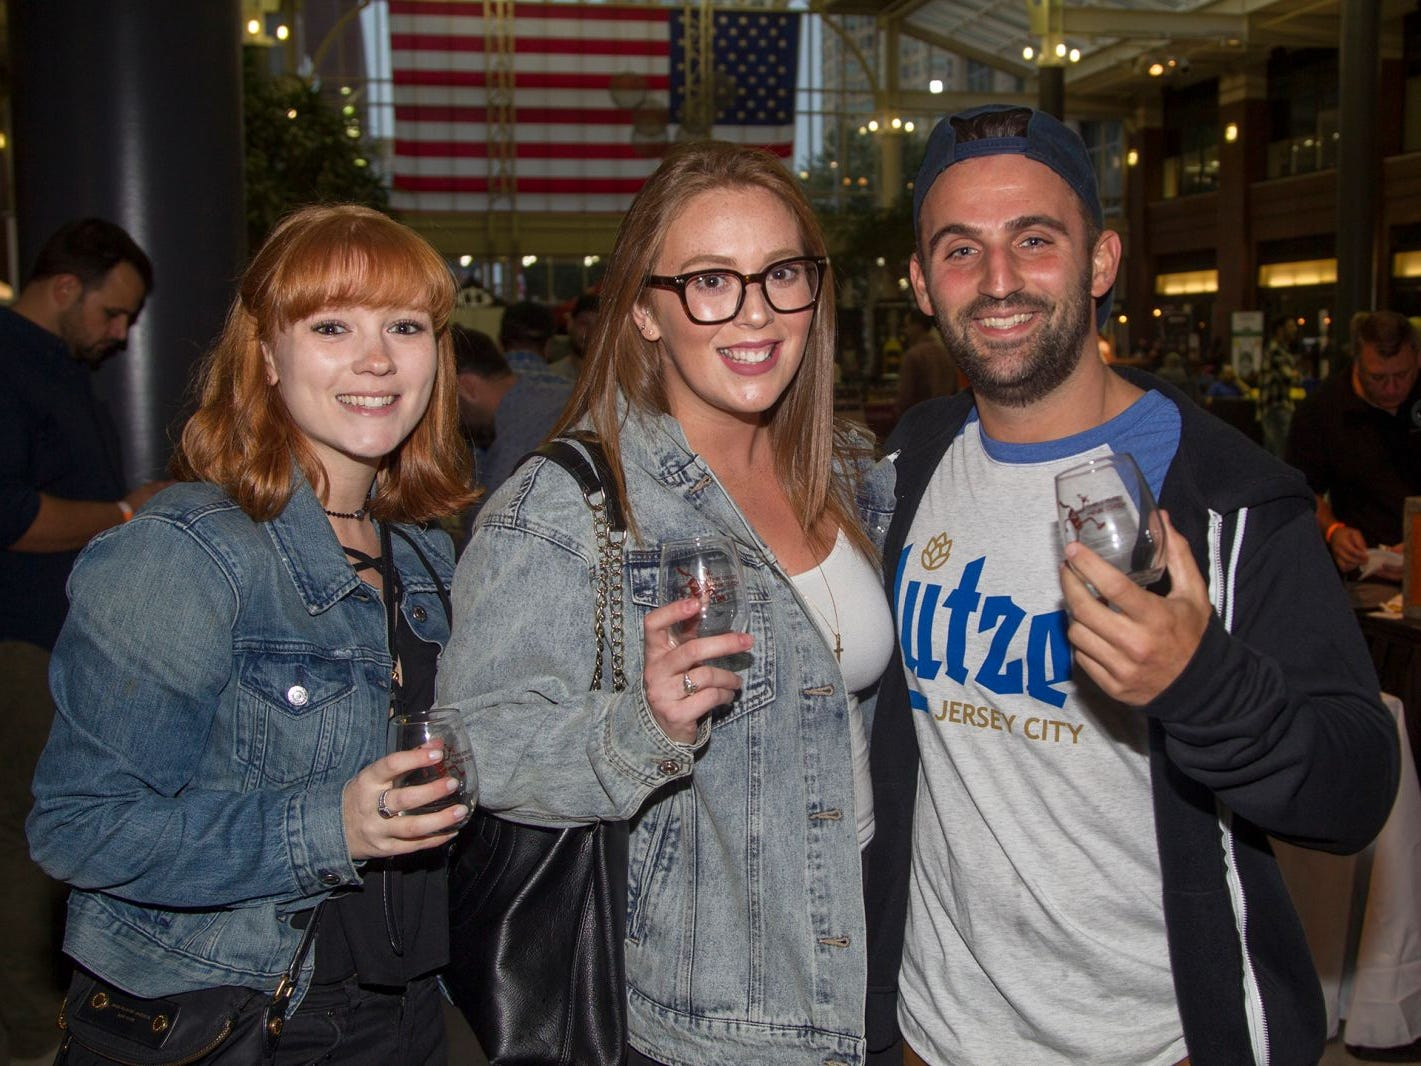 Susuan, Caitlyn, Dave. Jersey City Craft Distillery Fest at the Harborside Atrium featured more than 100 styles of spirits. Guests had the chance to taste craft-distilled spirits from moonshine, rum, cognac, whiskey, vodka, gin, tequila and more. 09/08/2018